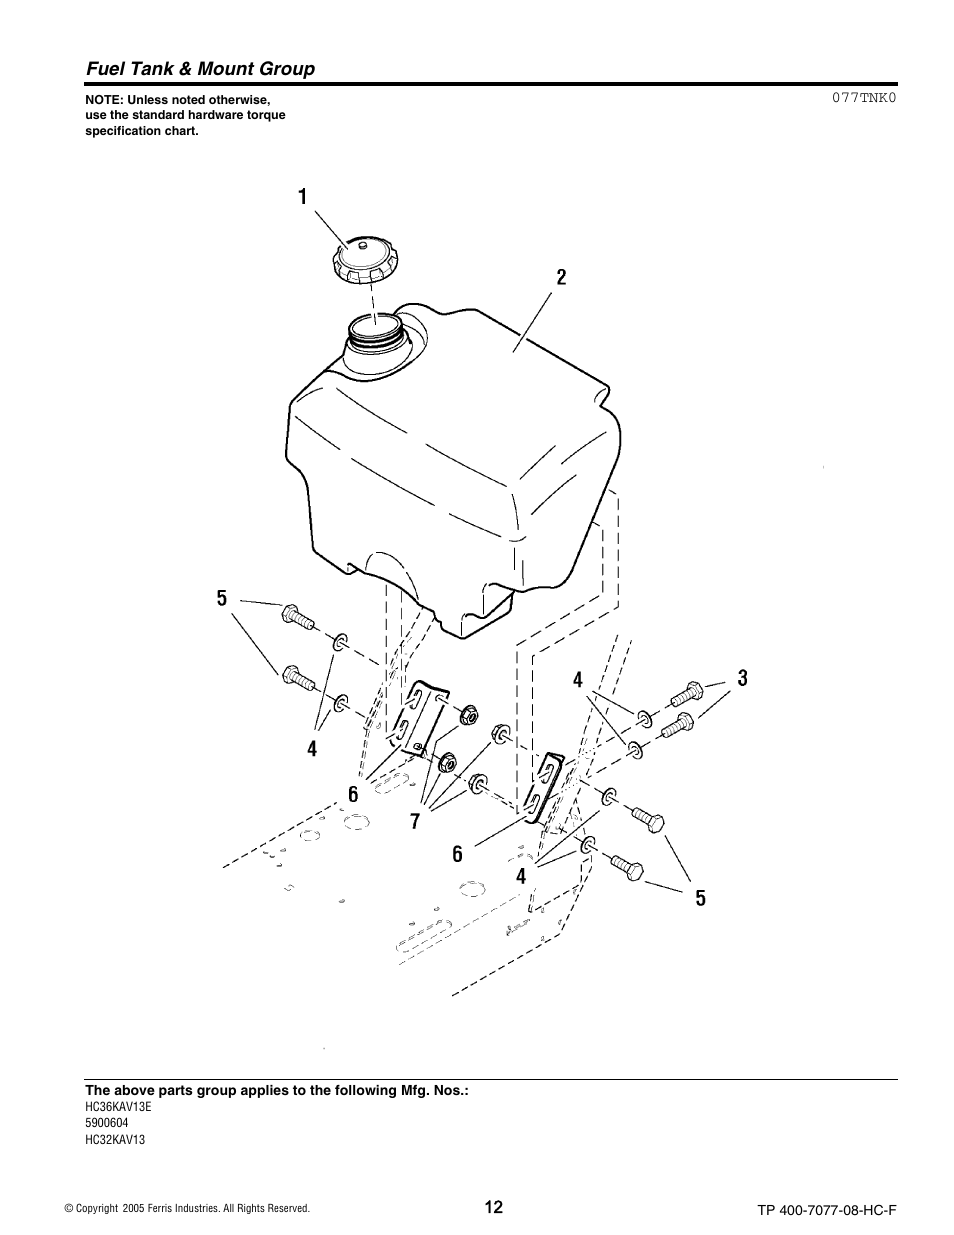 fuel tank mount group ferris industries hc36kav13e user manual Fuel Tank Color Codes fuel tank mount group ferris industries hc36kav13e user manual page 12 54